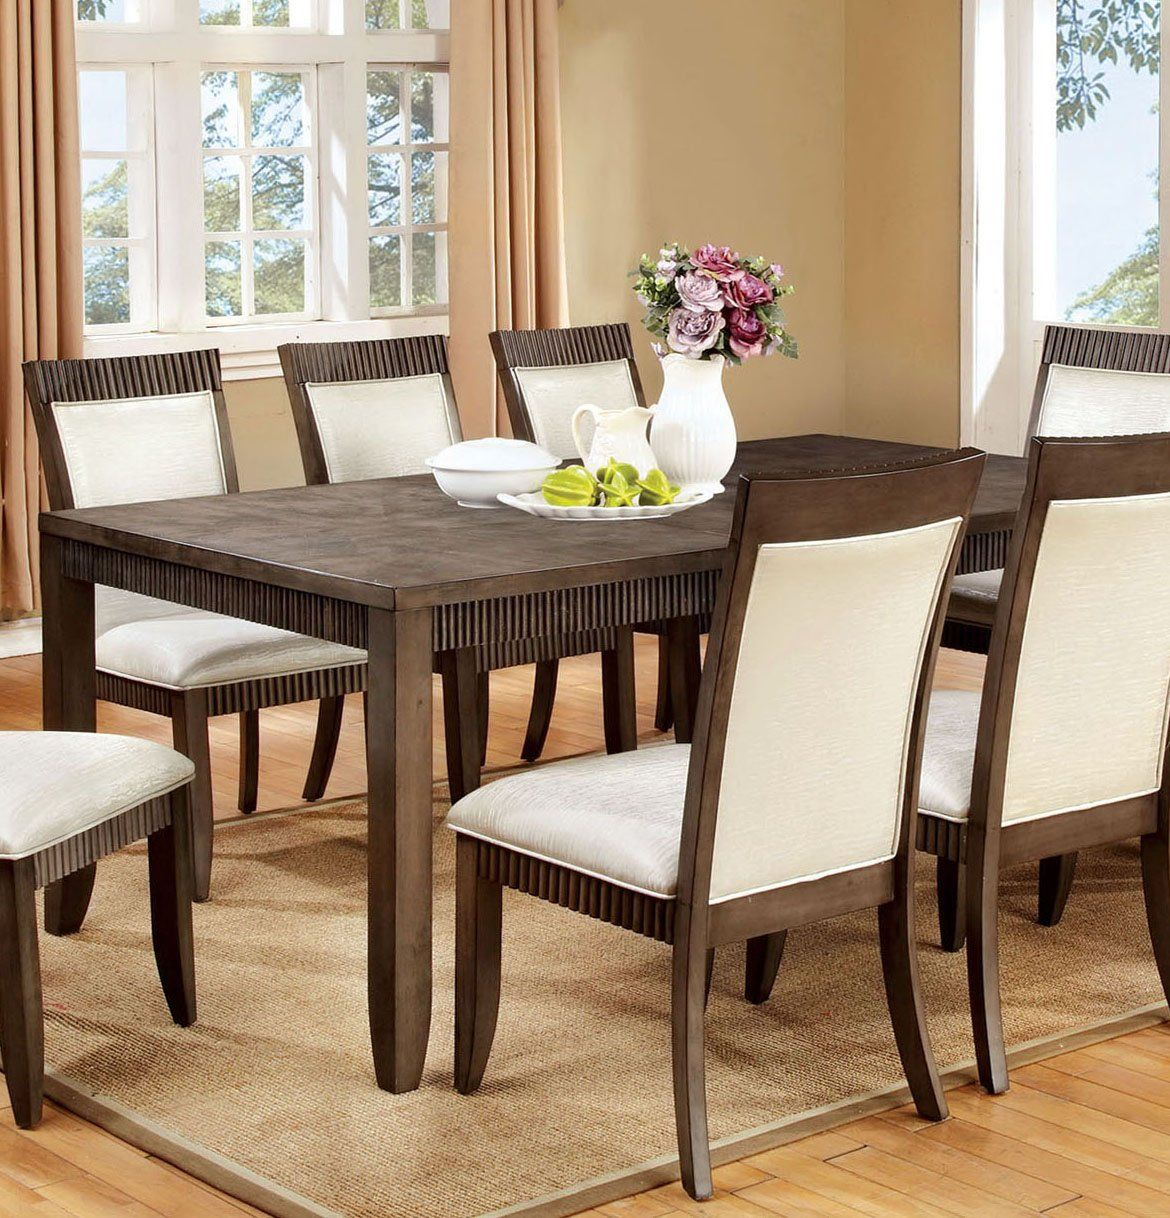 Furniture Of America Cm3435T Forbes I Transitional Gray Dining Table Throughout Recent Goodman 5 Piece Solid Wood Dining Sets (Set Of 5) (Image 6 of 20)